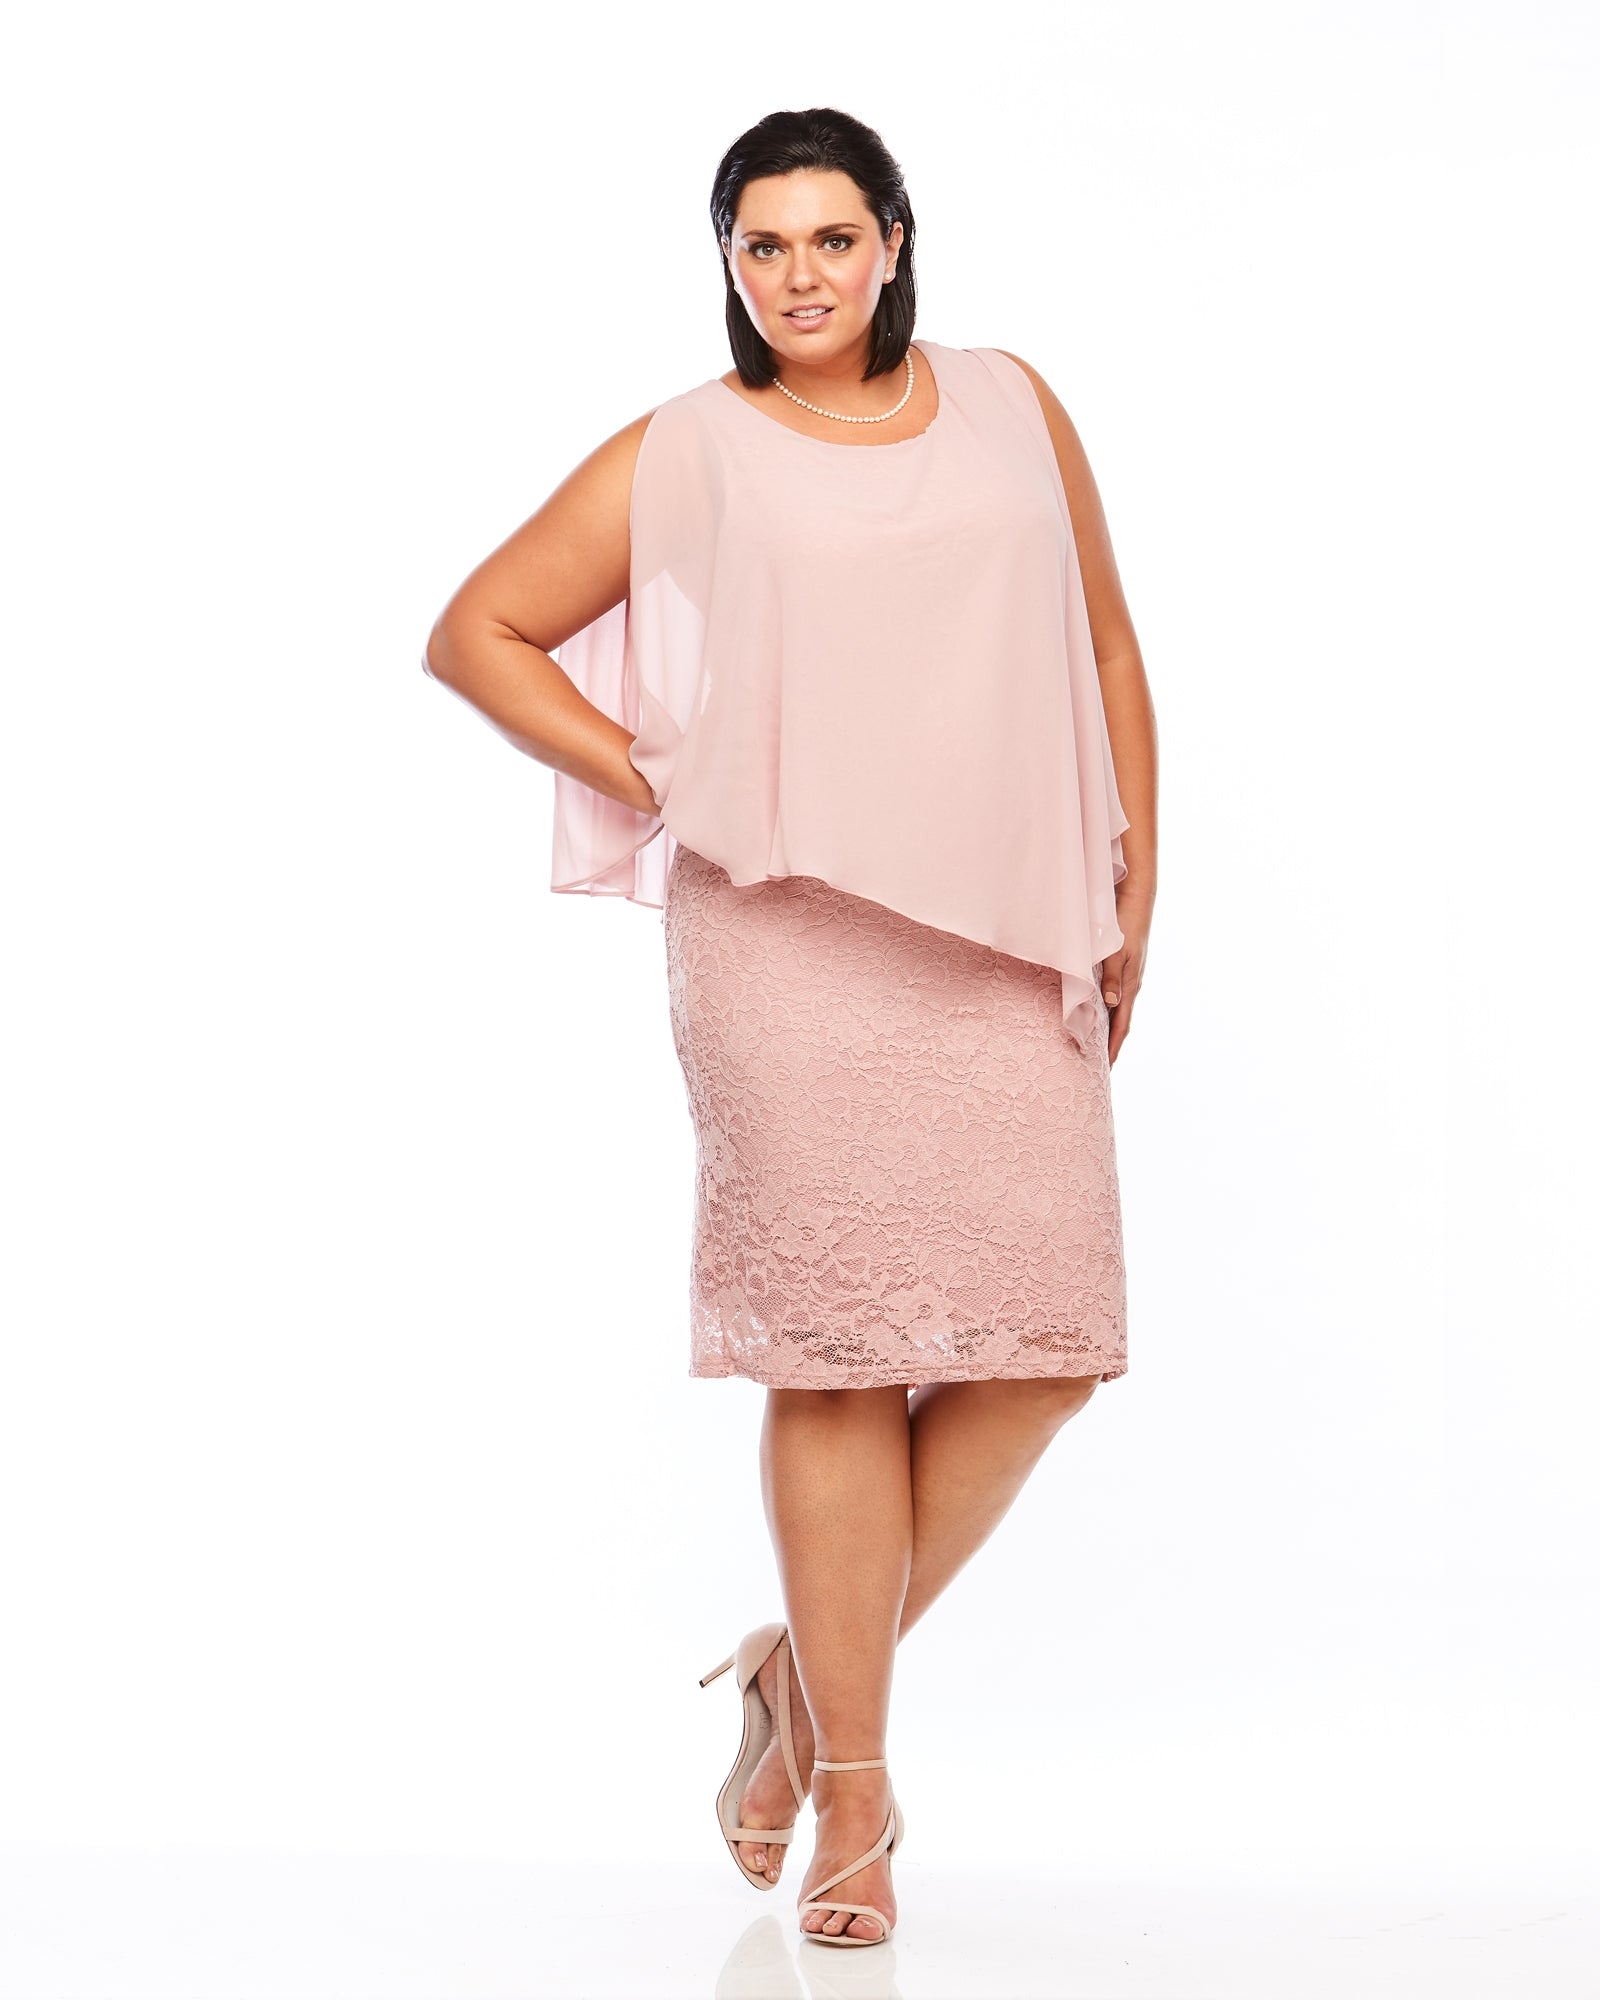 6fd1bbcadc Plus Size Clothing sizes 12-26. Free AU Delivery Over  100